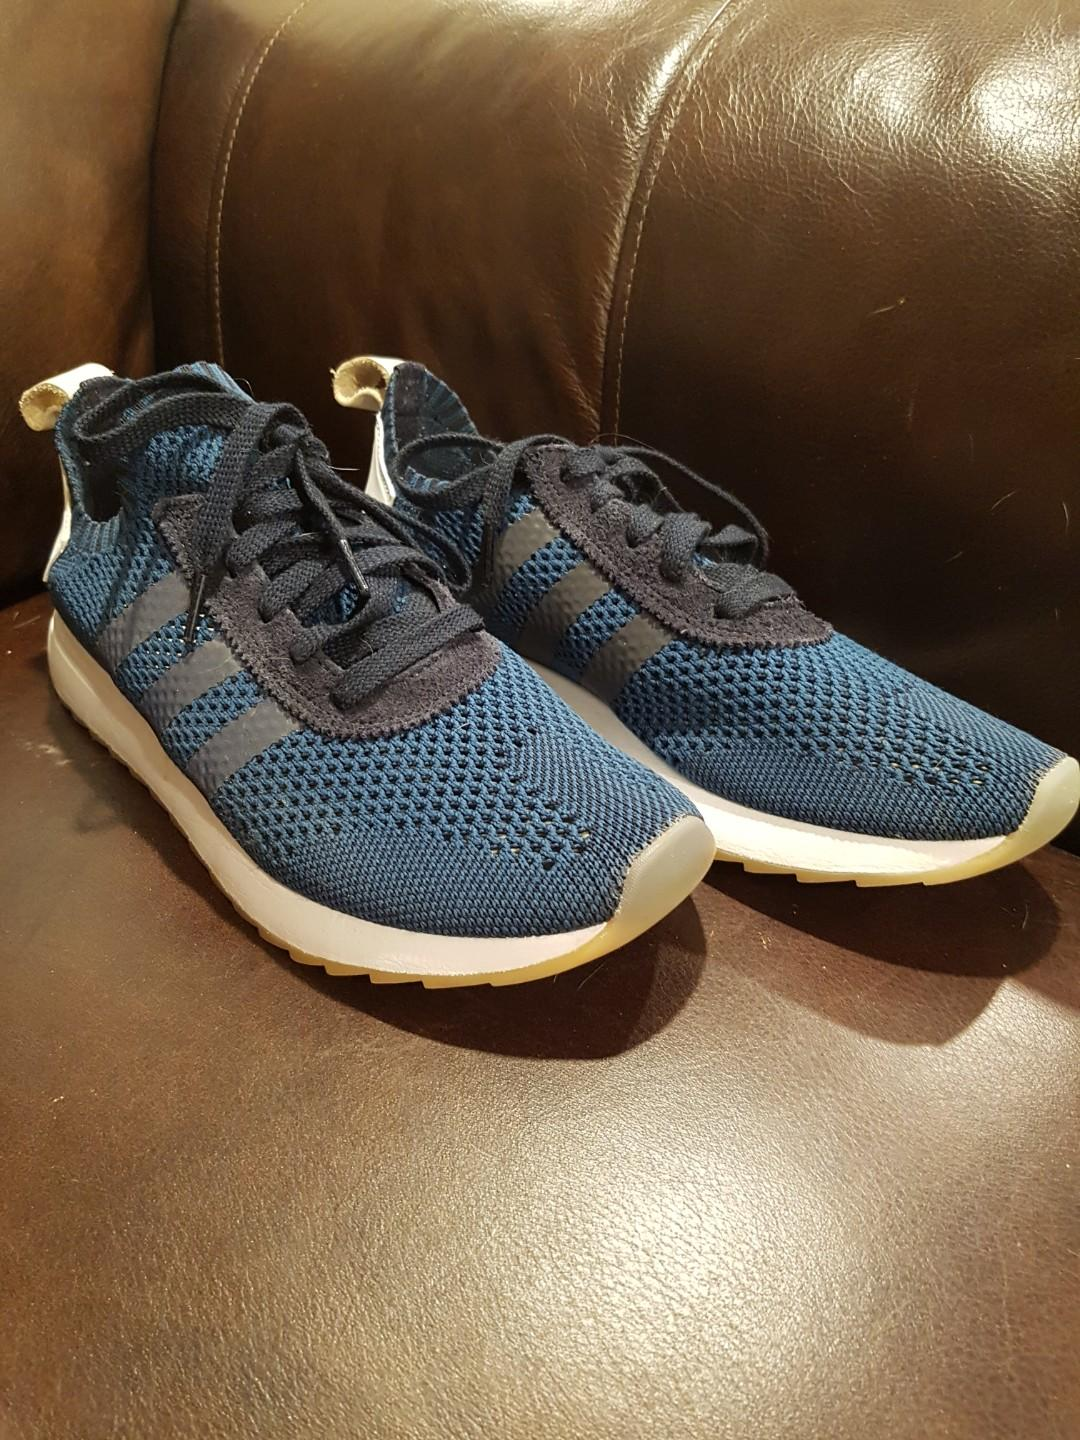 Women's Adidas FLB Primeknit Running Shoes ( Size 9.5 )